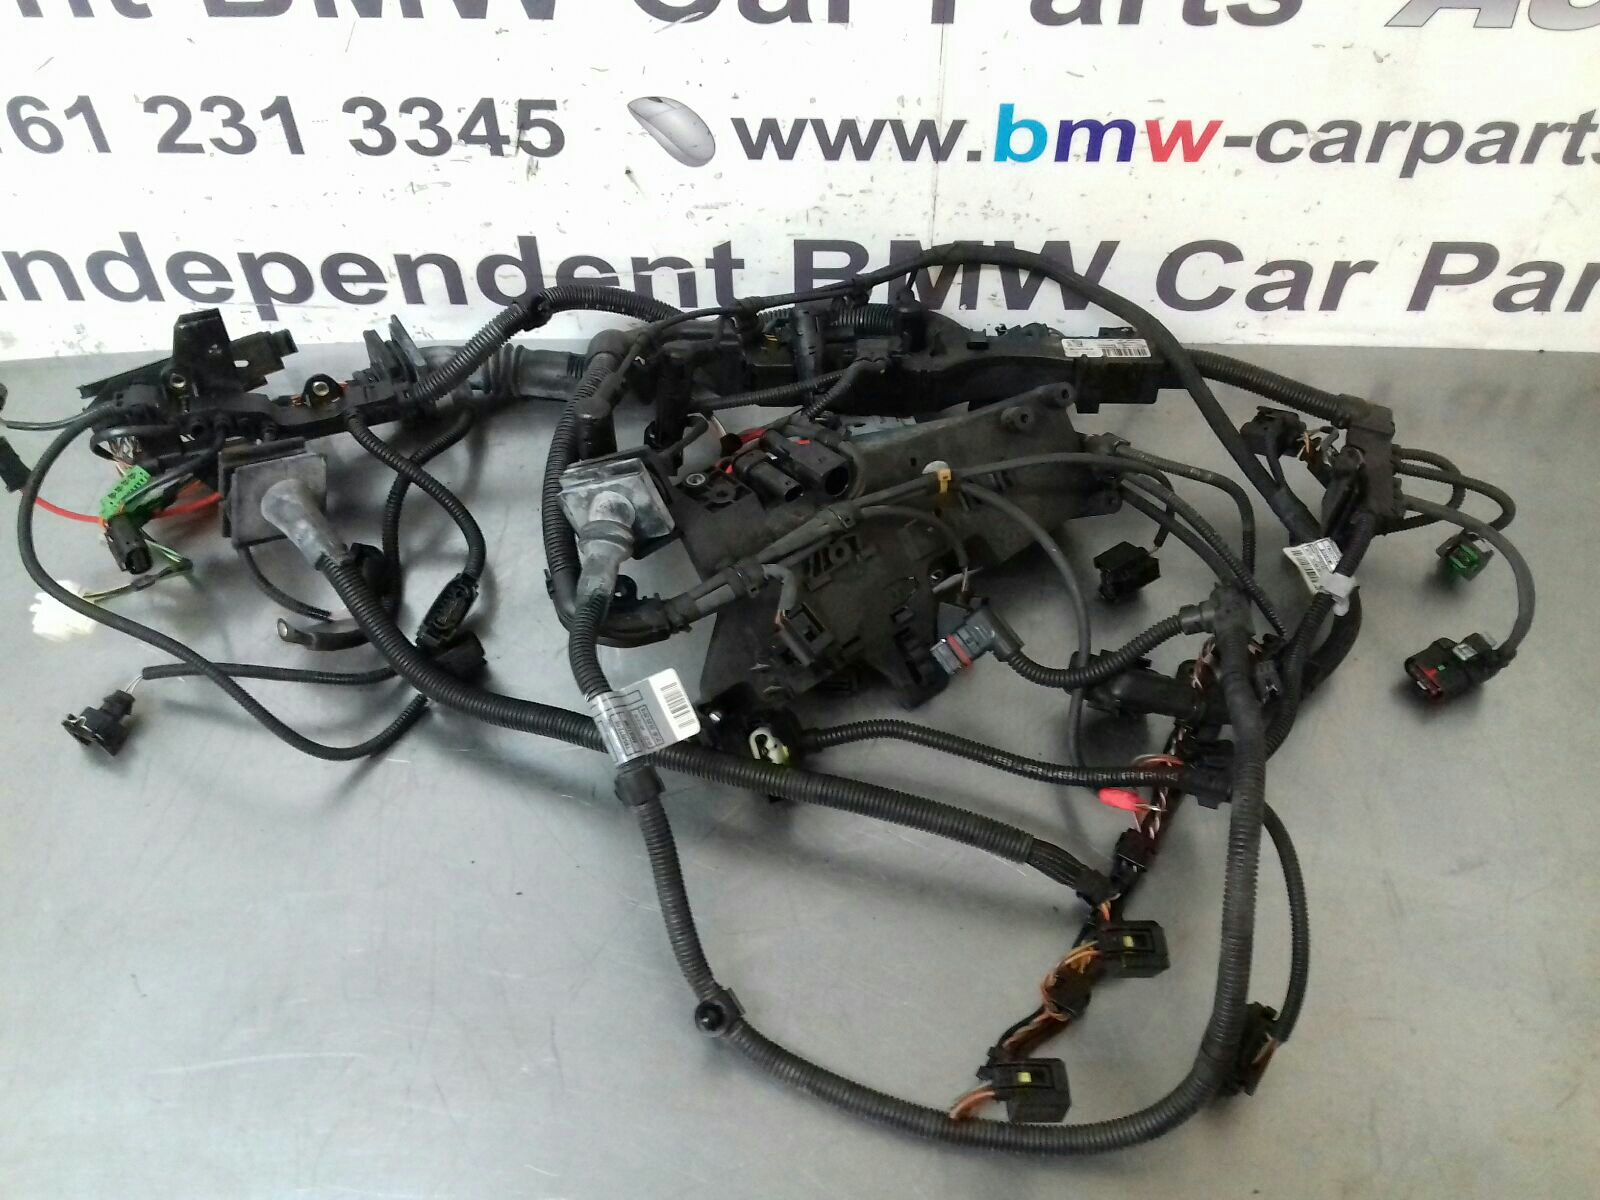 hight resolution of bmw e87 1 series n47 engine wiring loom 12518507213 breaking for bmw 1 series radio wiring diagram bmw 1 series wiring loom